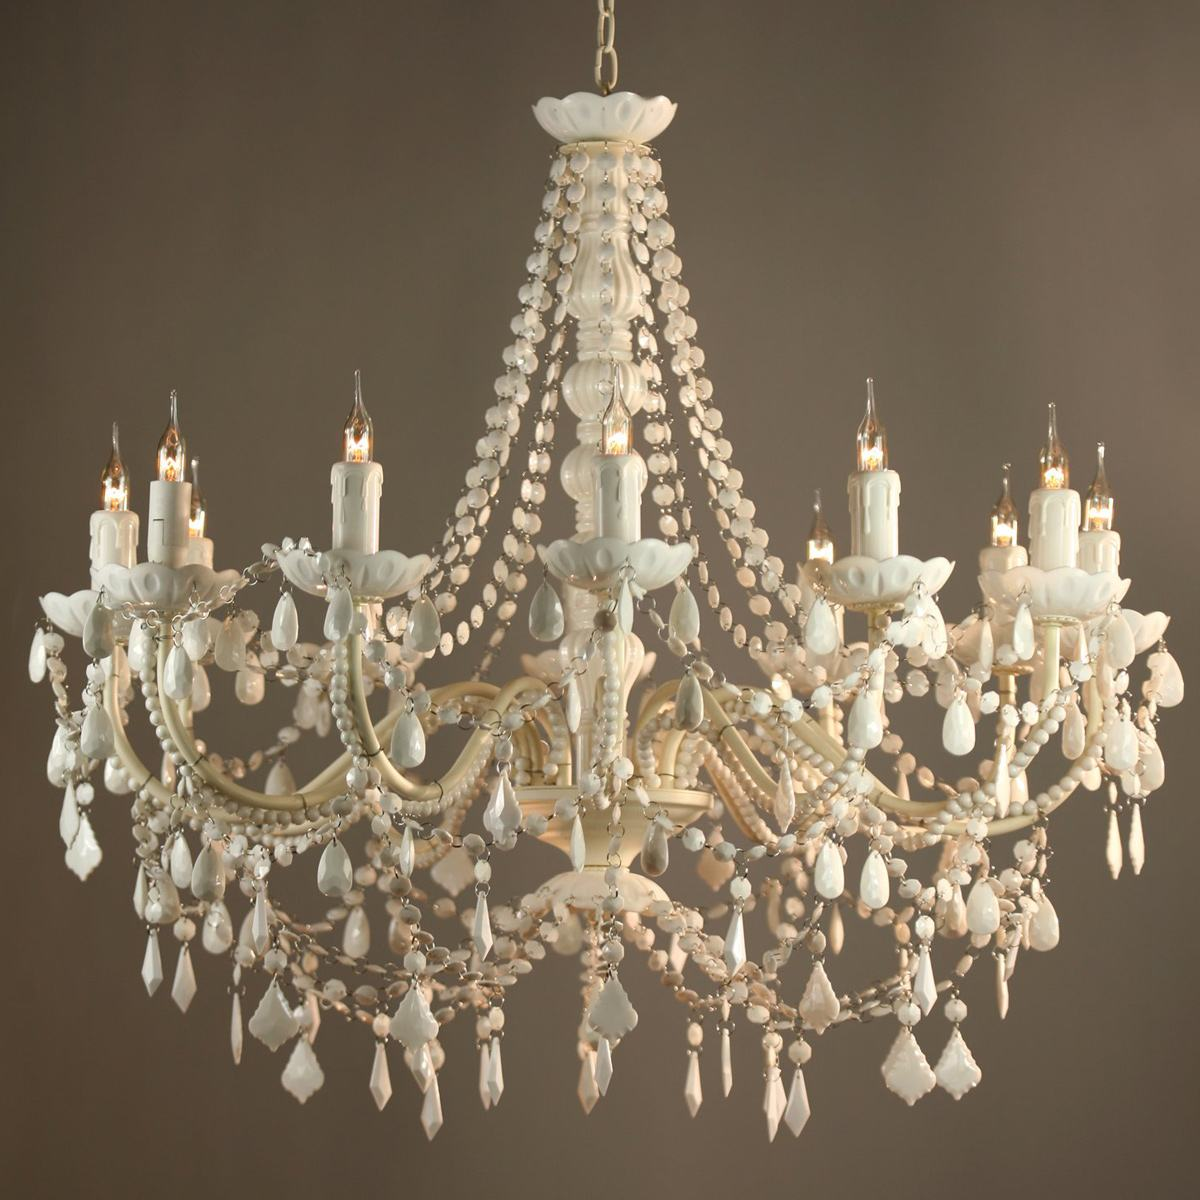 mimi white acrylic 12 arm chandelier french bedroom company